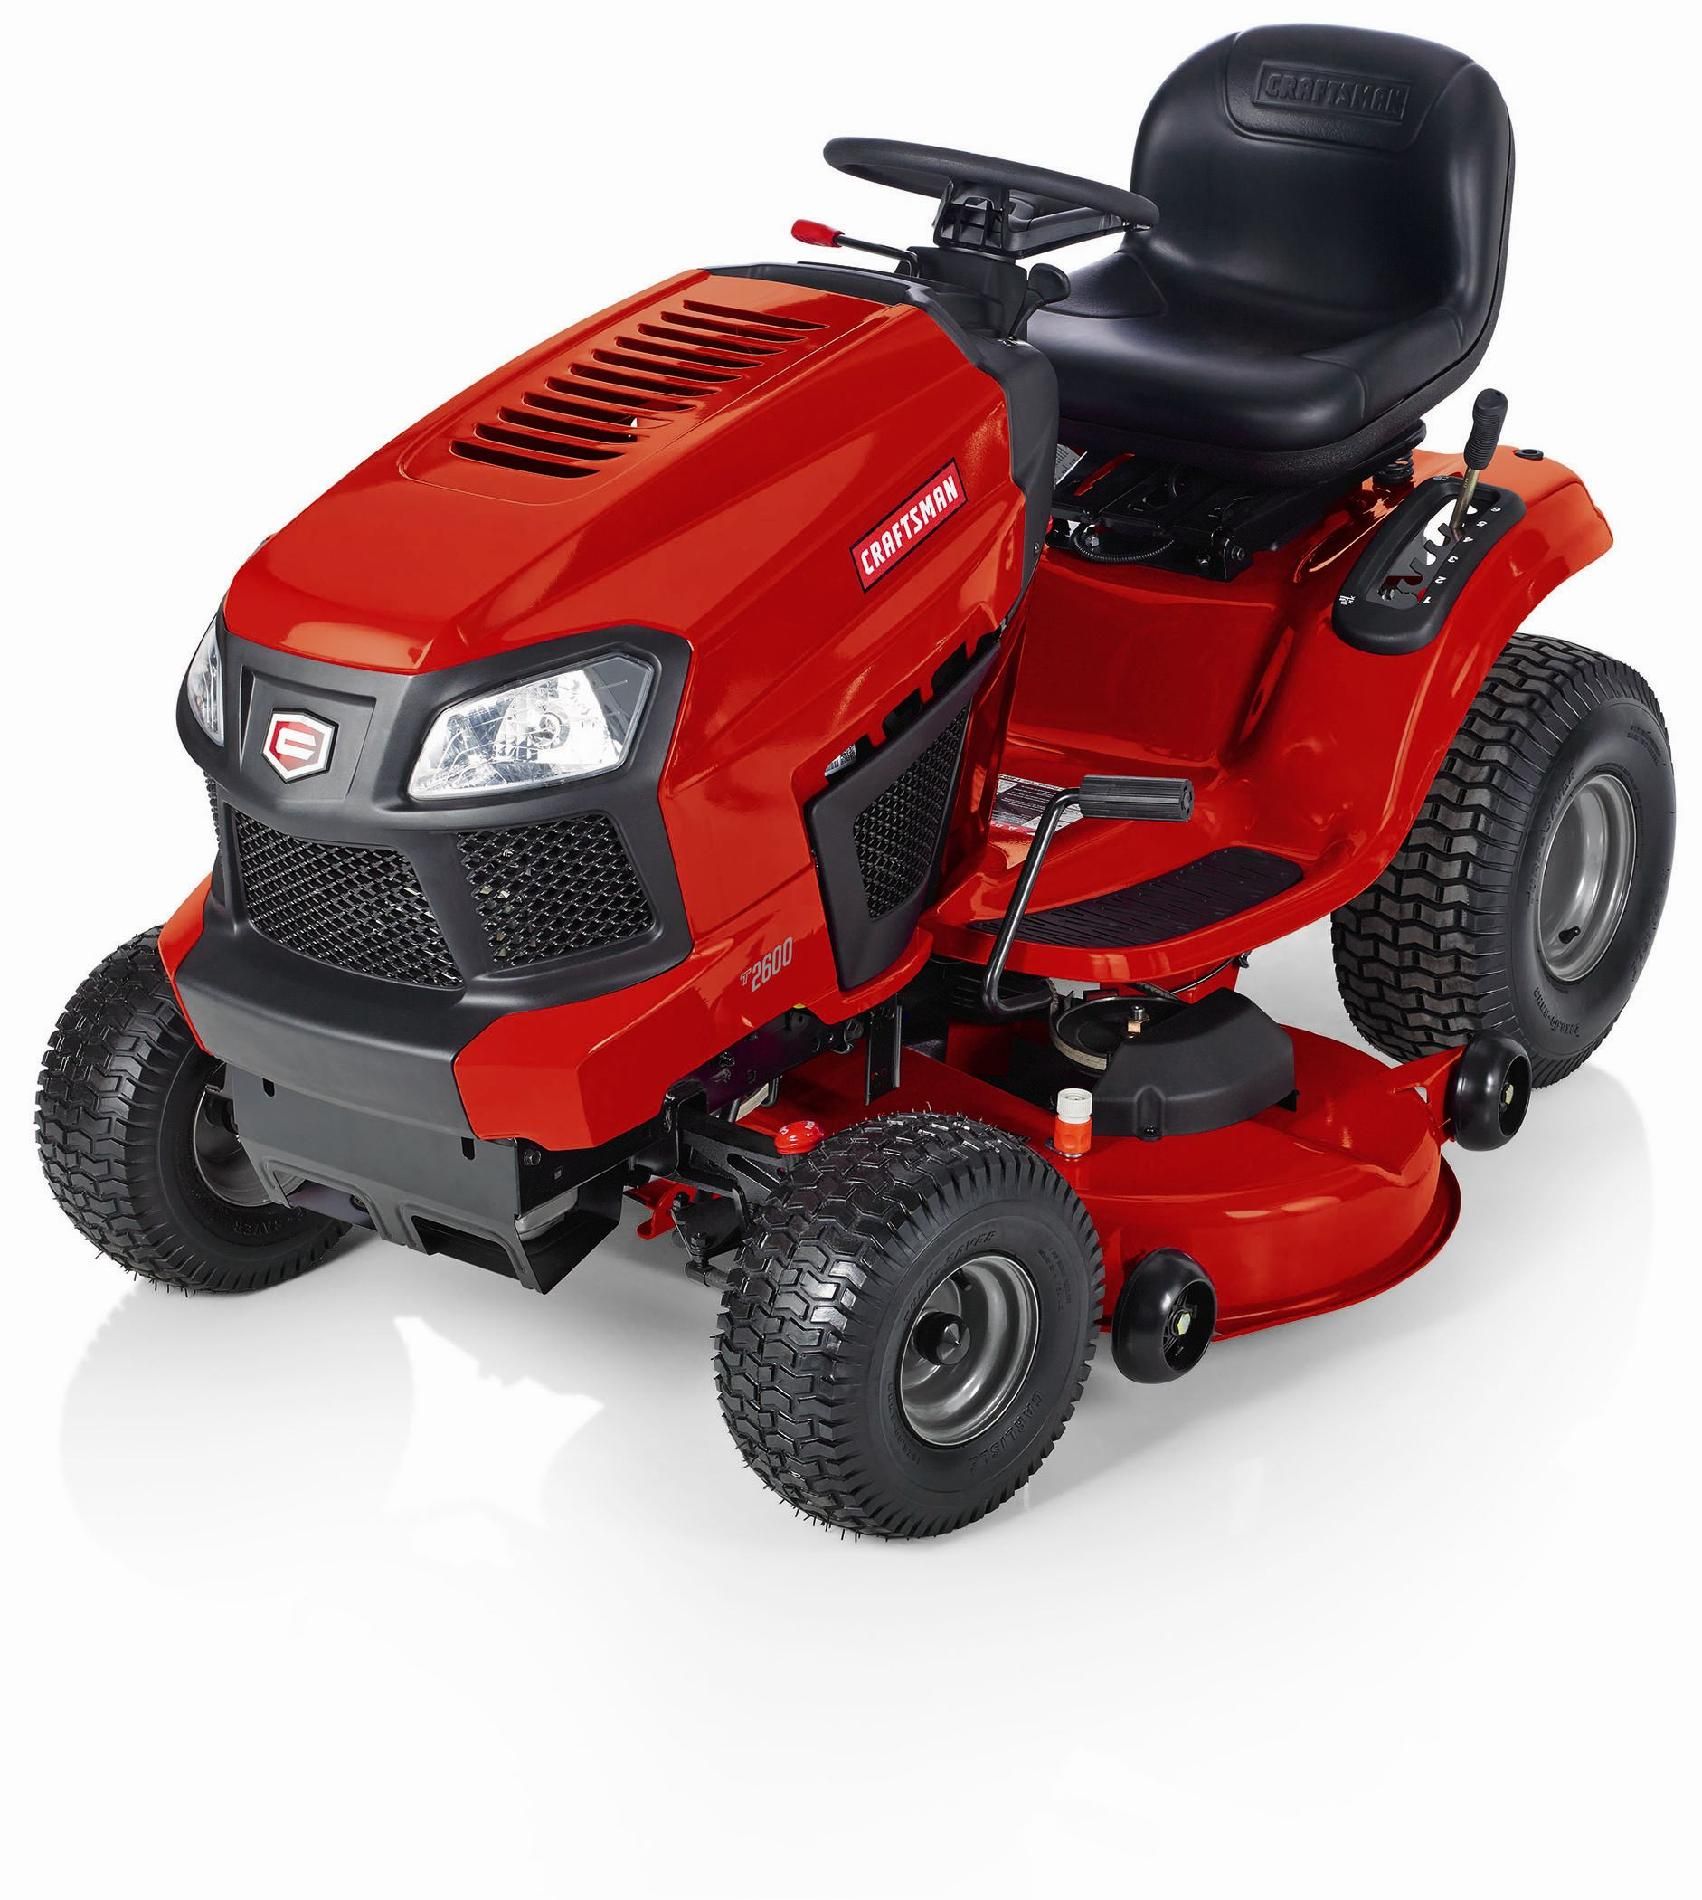 "Craftsman 19HP 46"" KOHLER Turn Tight® Automatic Riding Mower - Non CA"